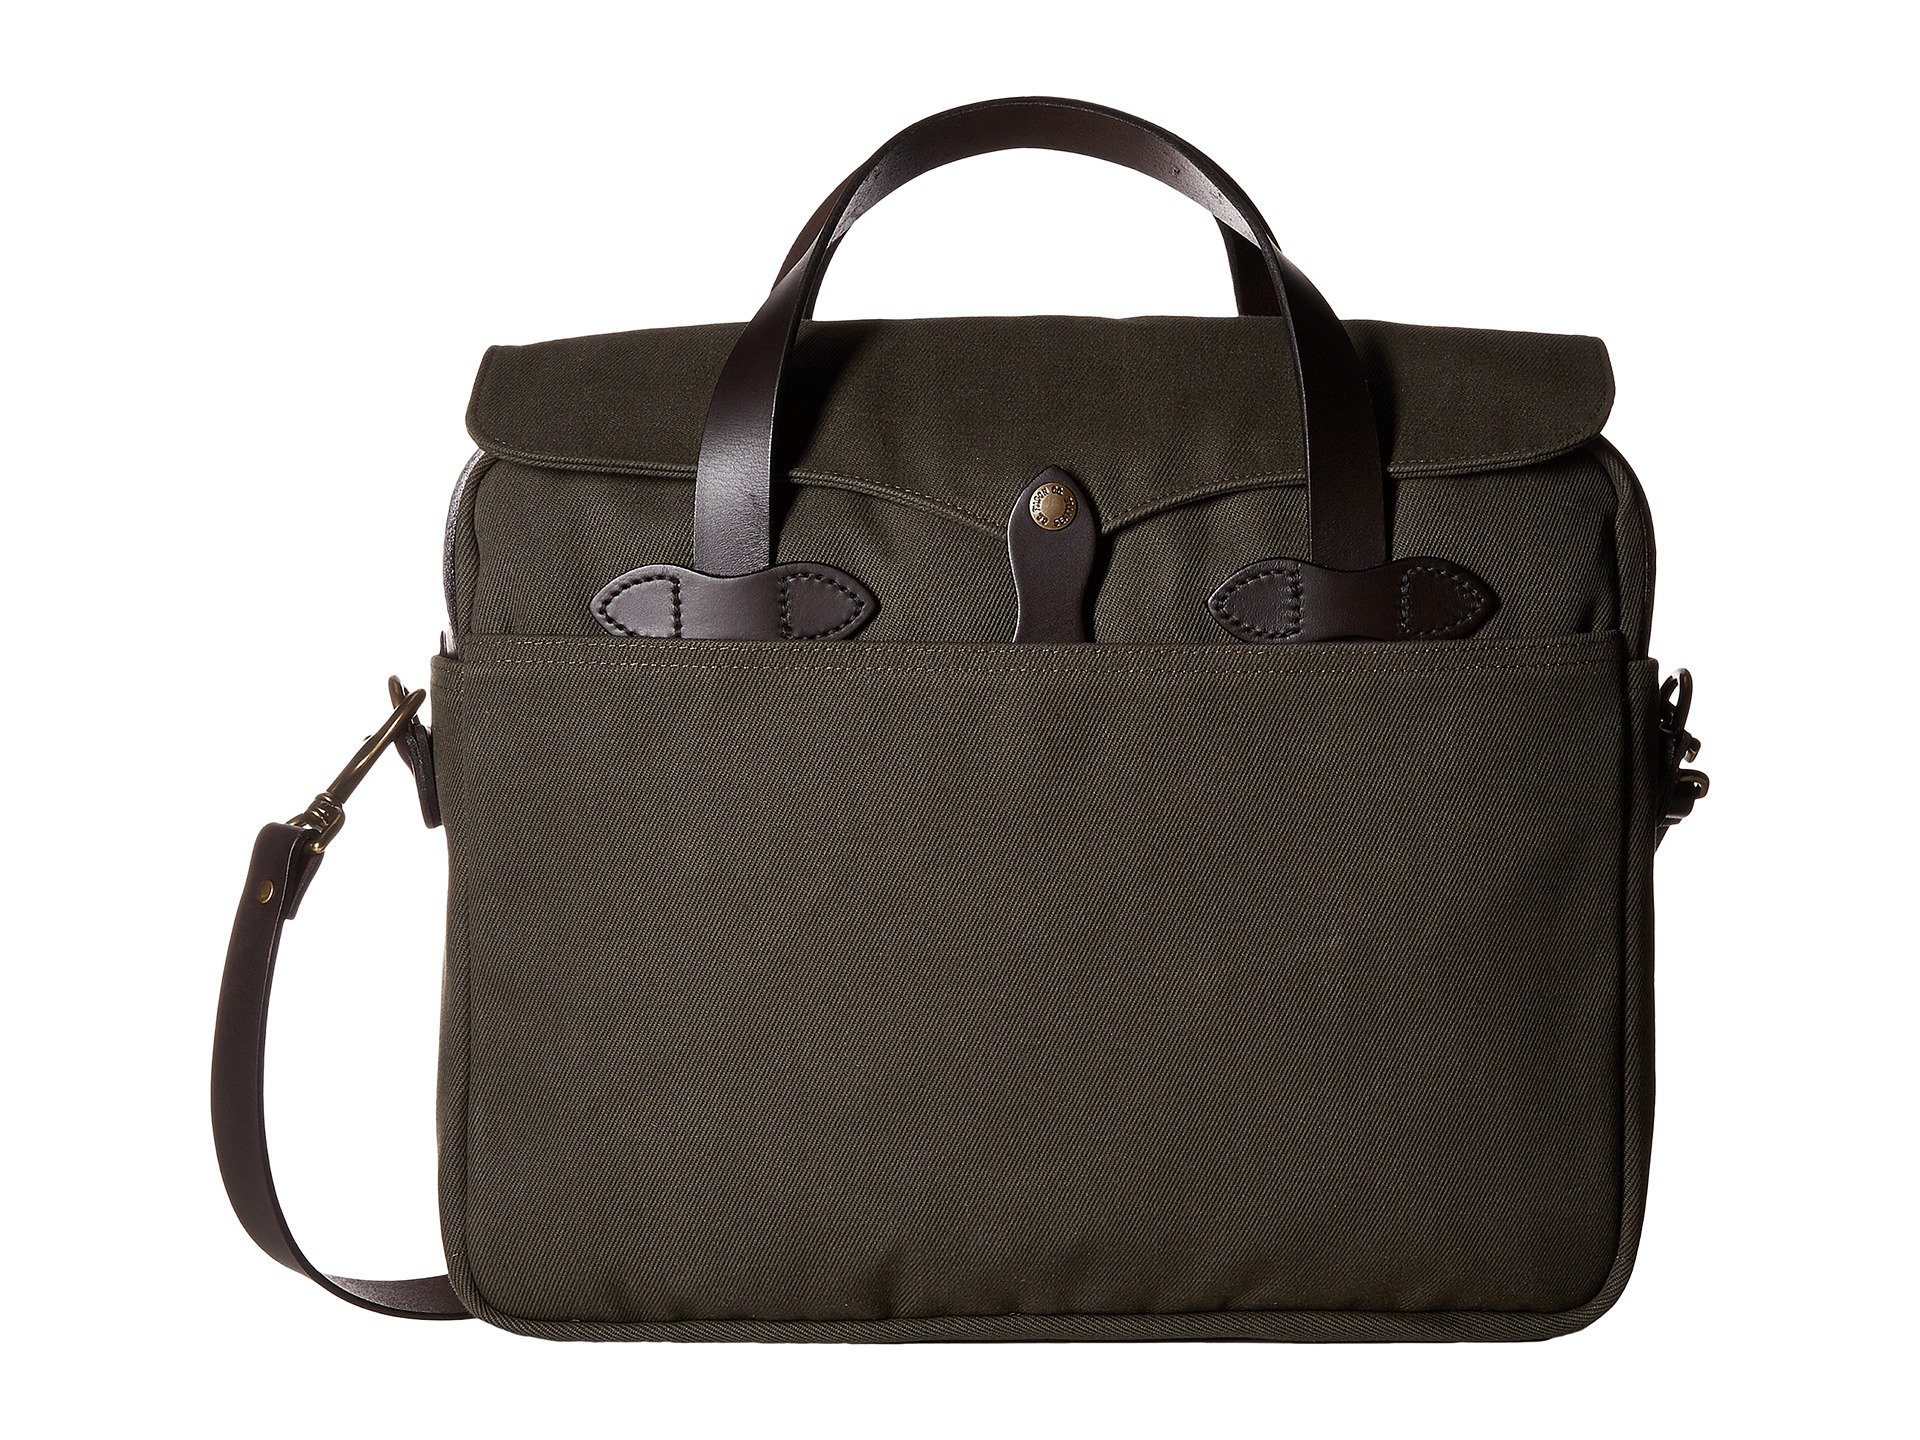 Filson Unisex Original Briefcase Otter Green 1 One Size by Filson